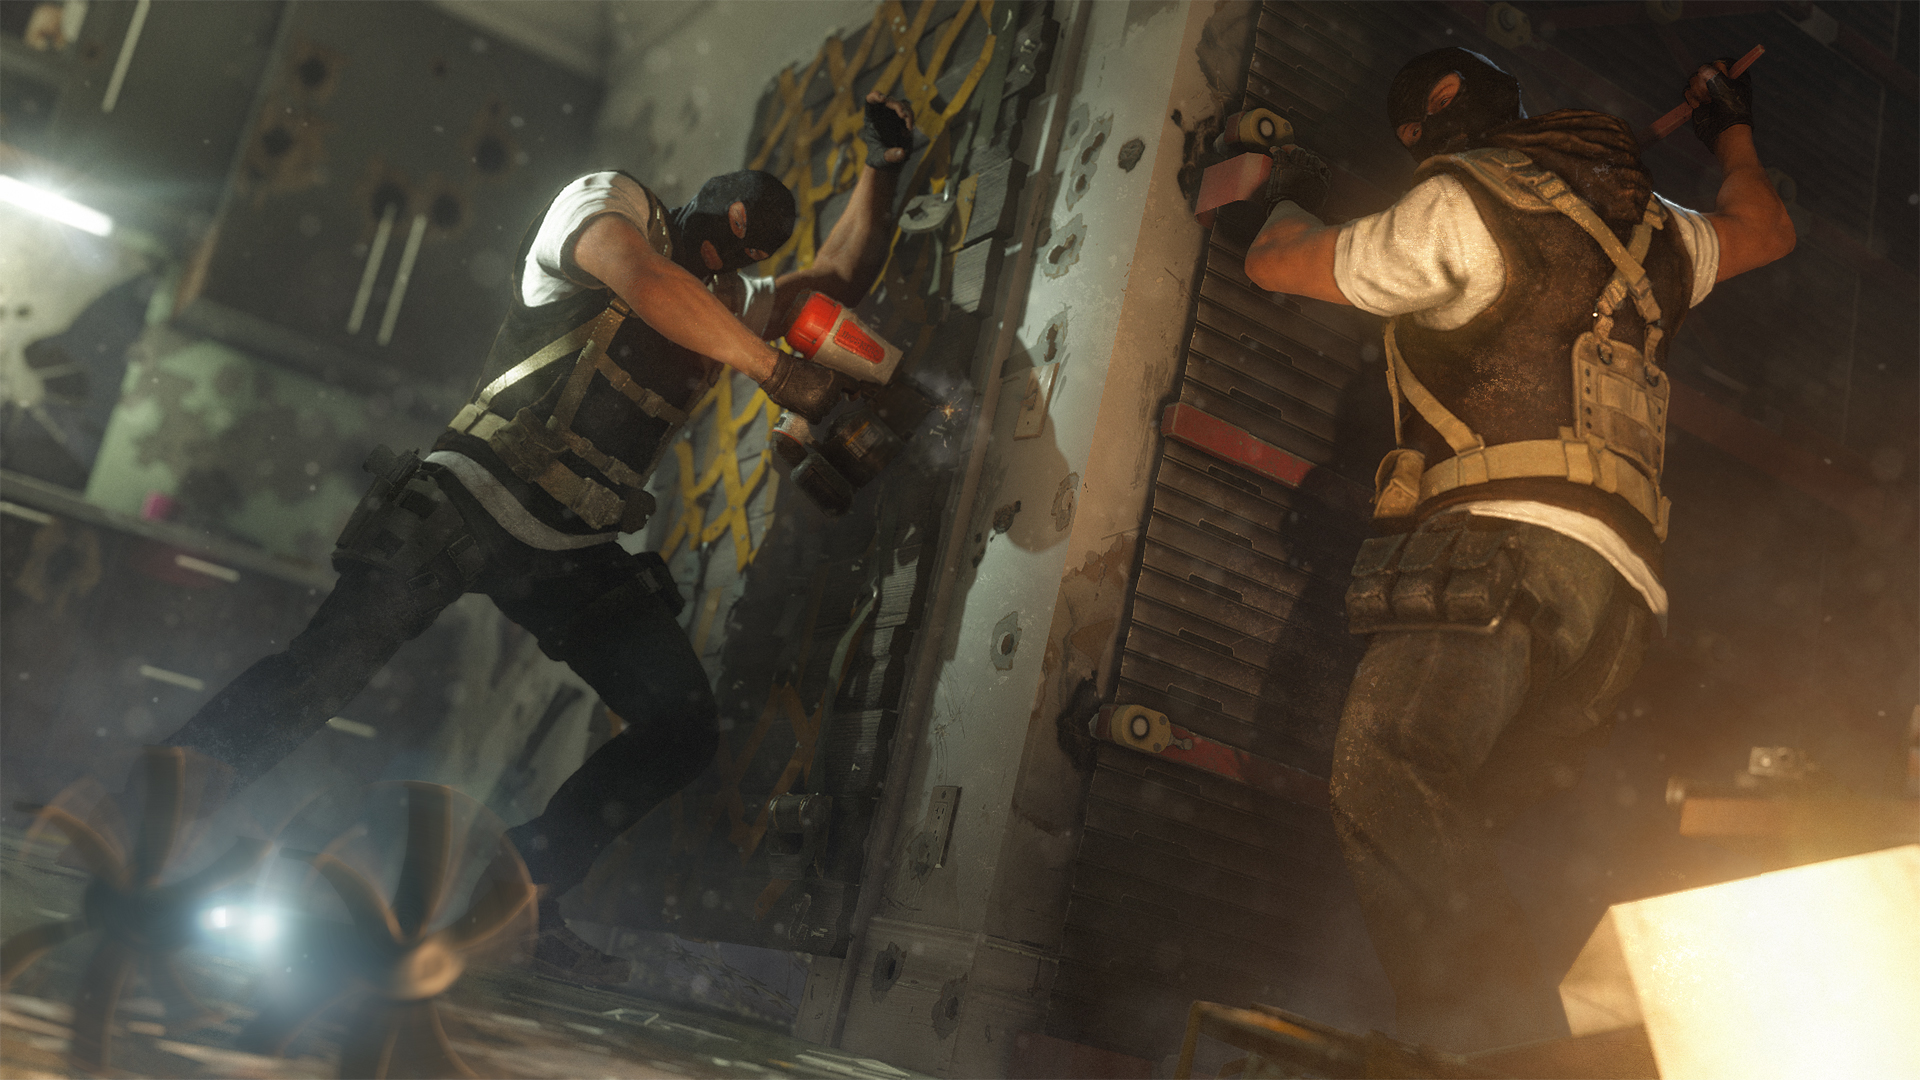 Download Wallpaper From Game Tom Clancy S Rainbow Six Siege With